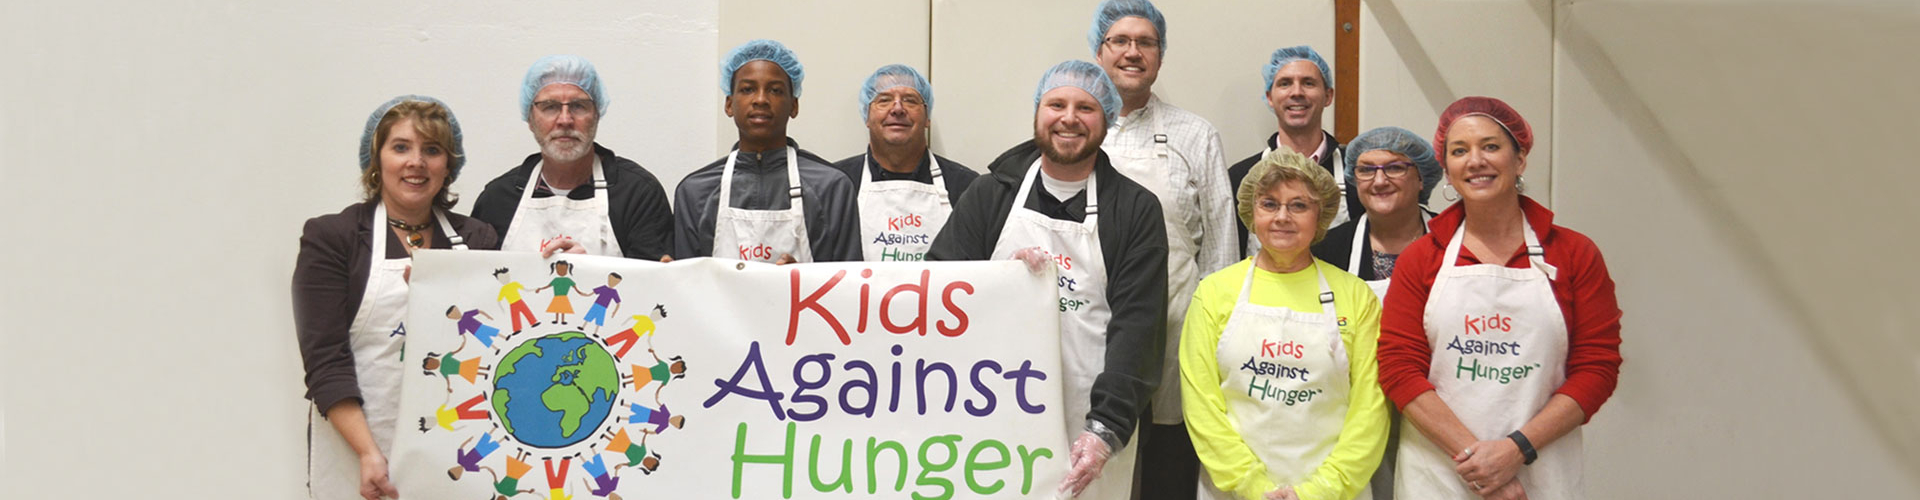 Community Commitment Kids Against Hunger